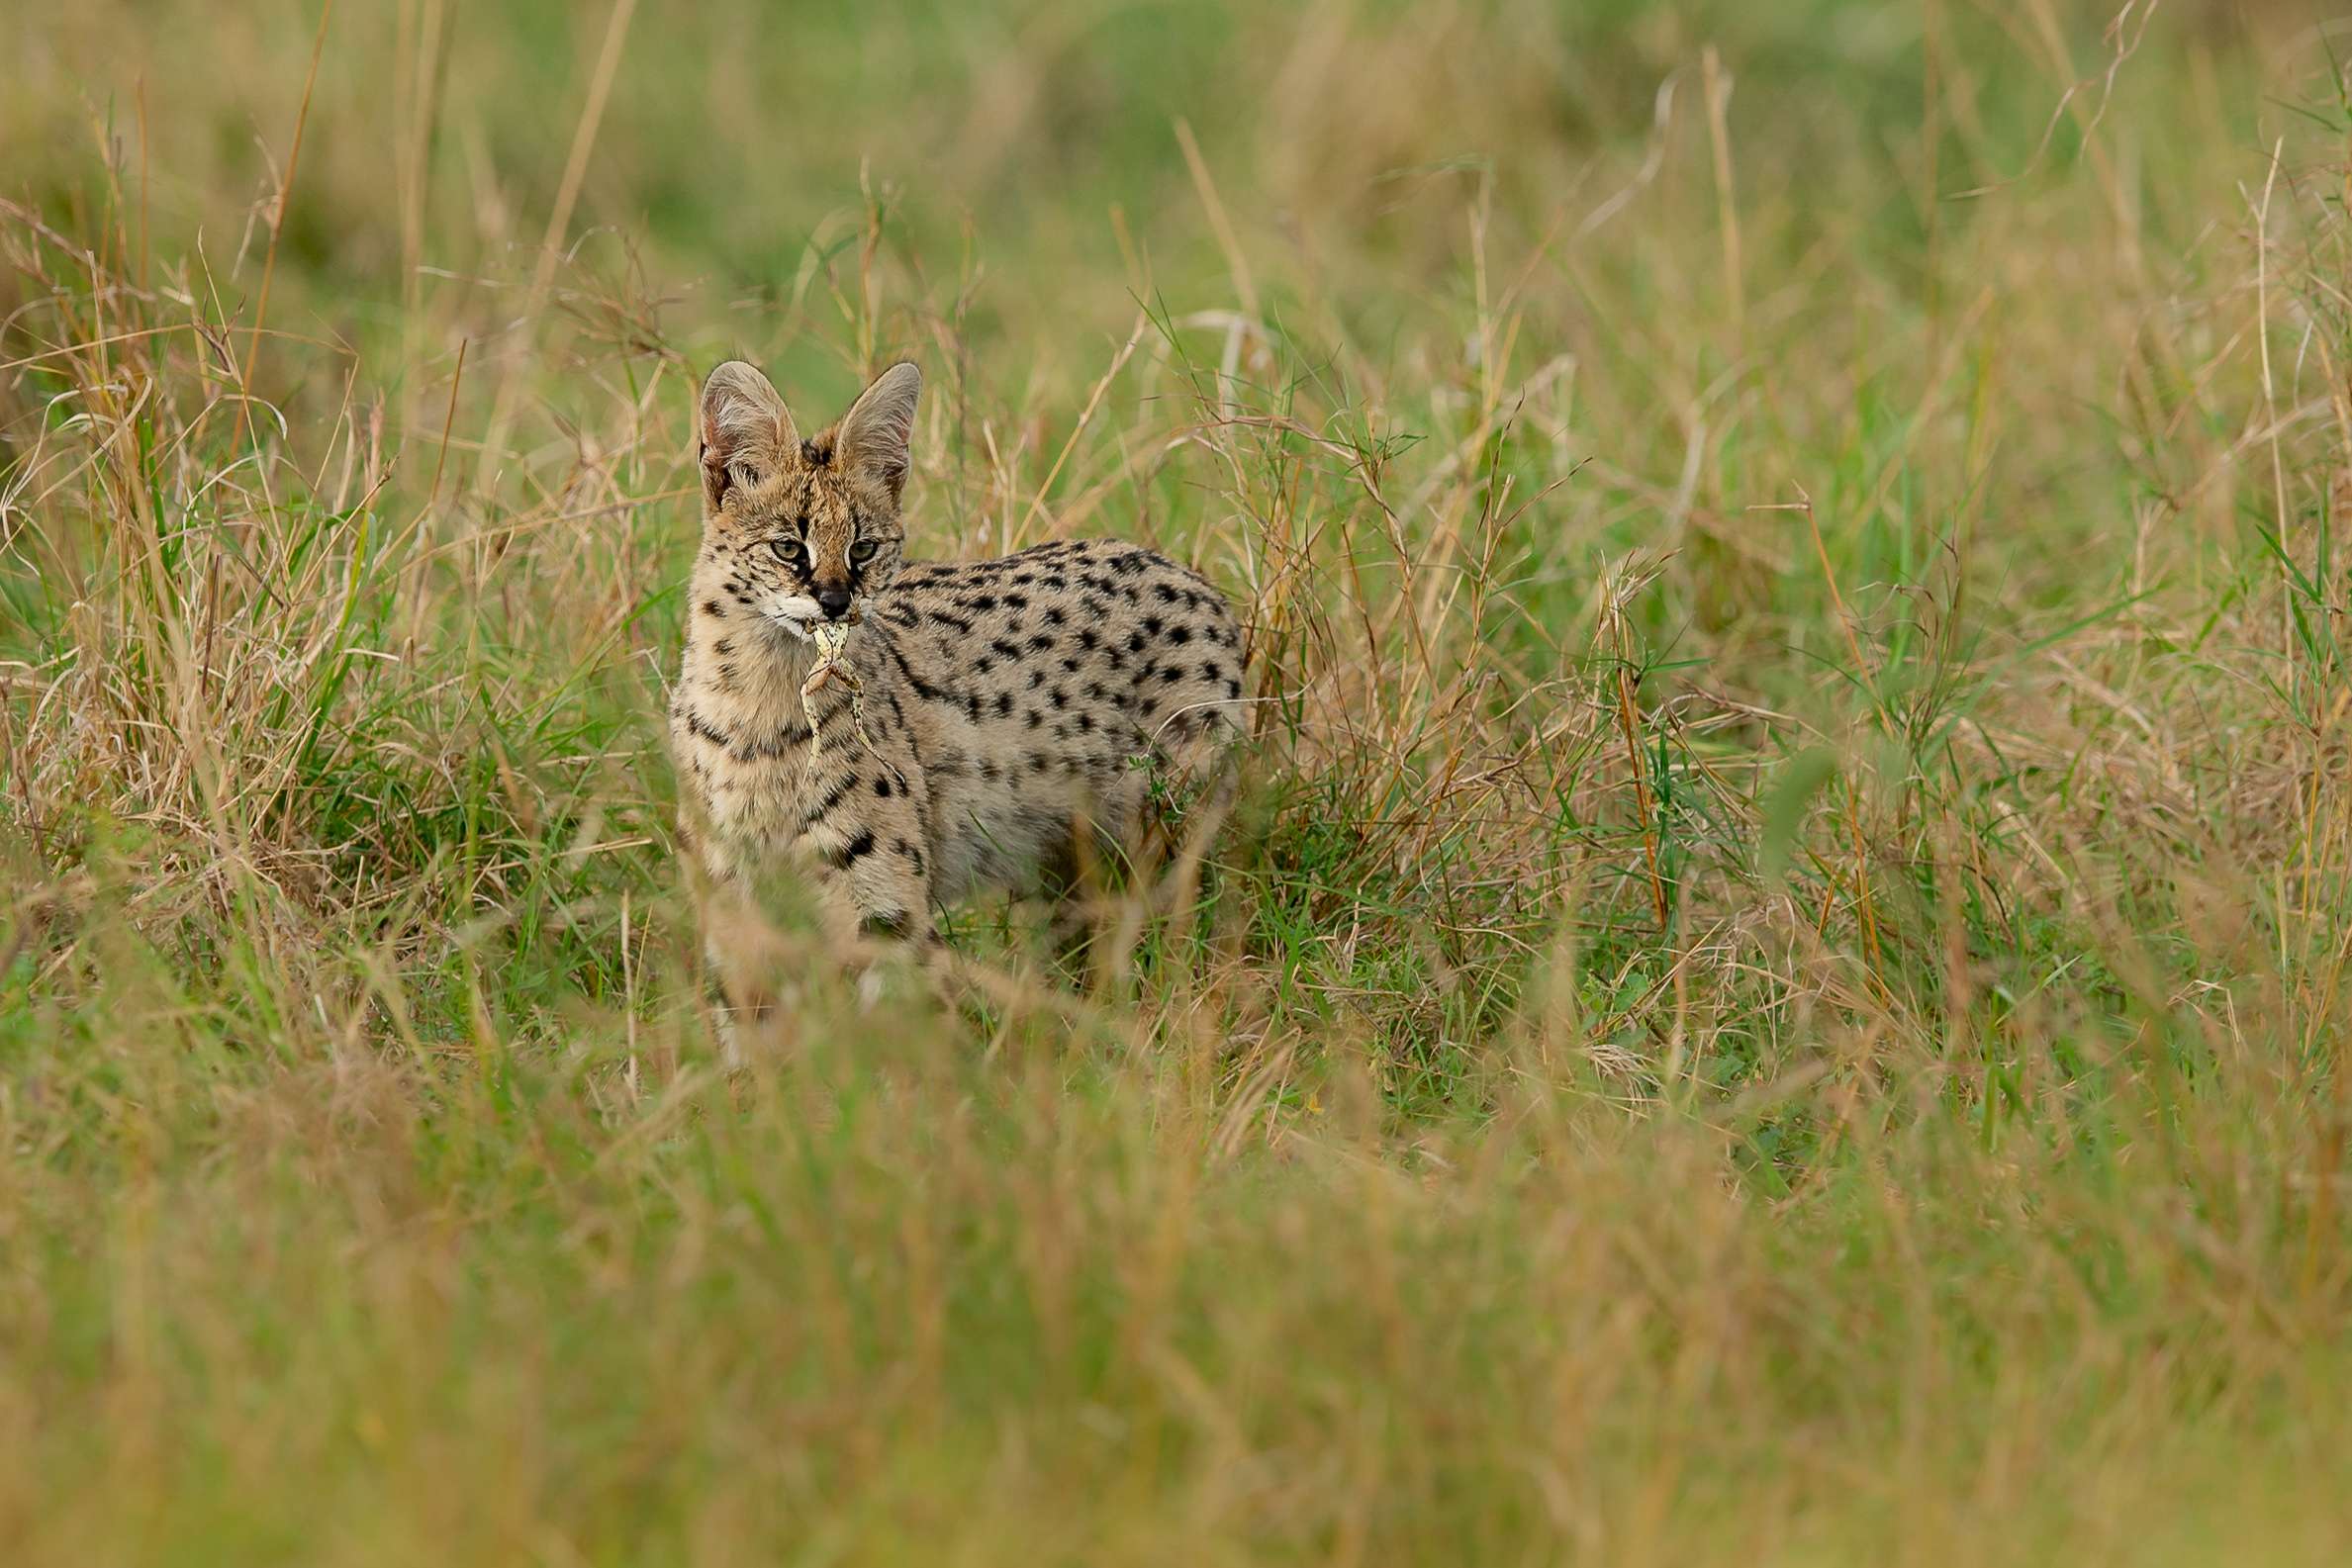 Serval cat with frog